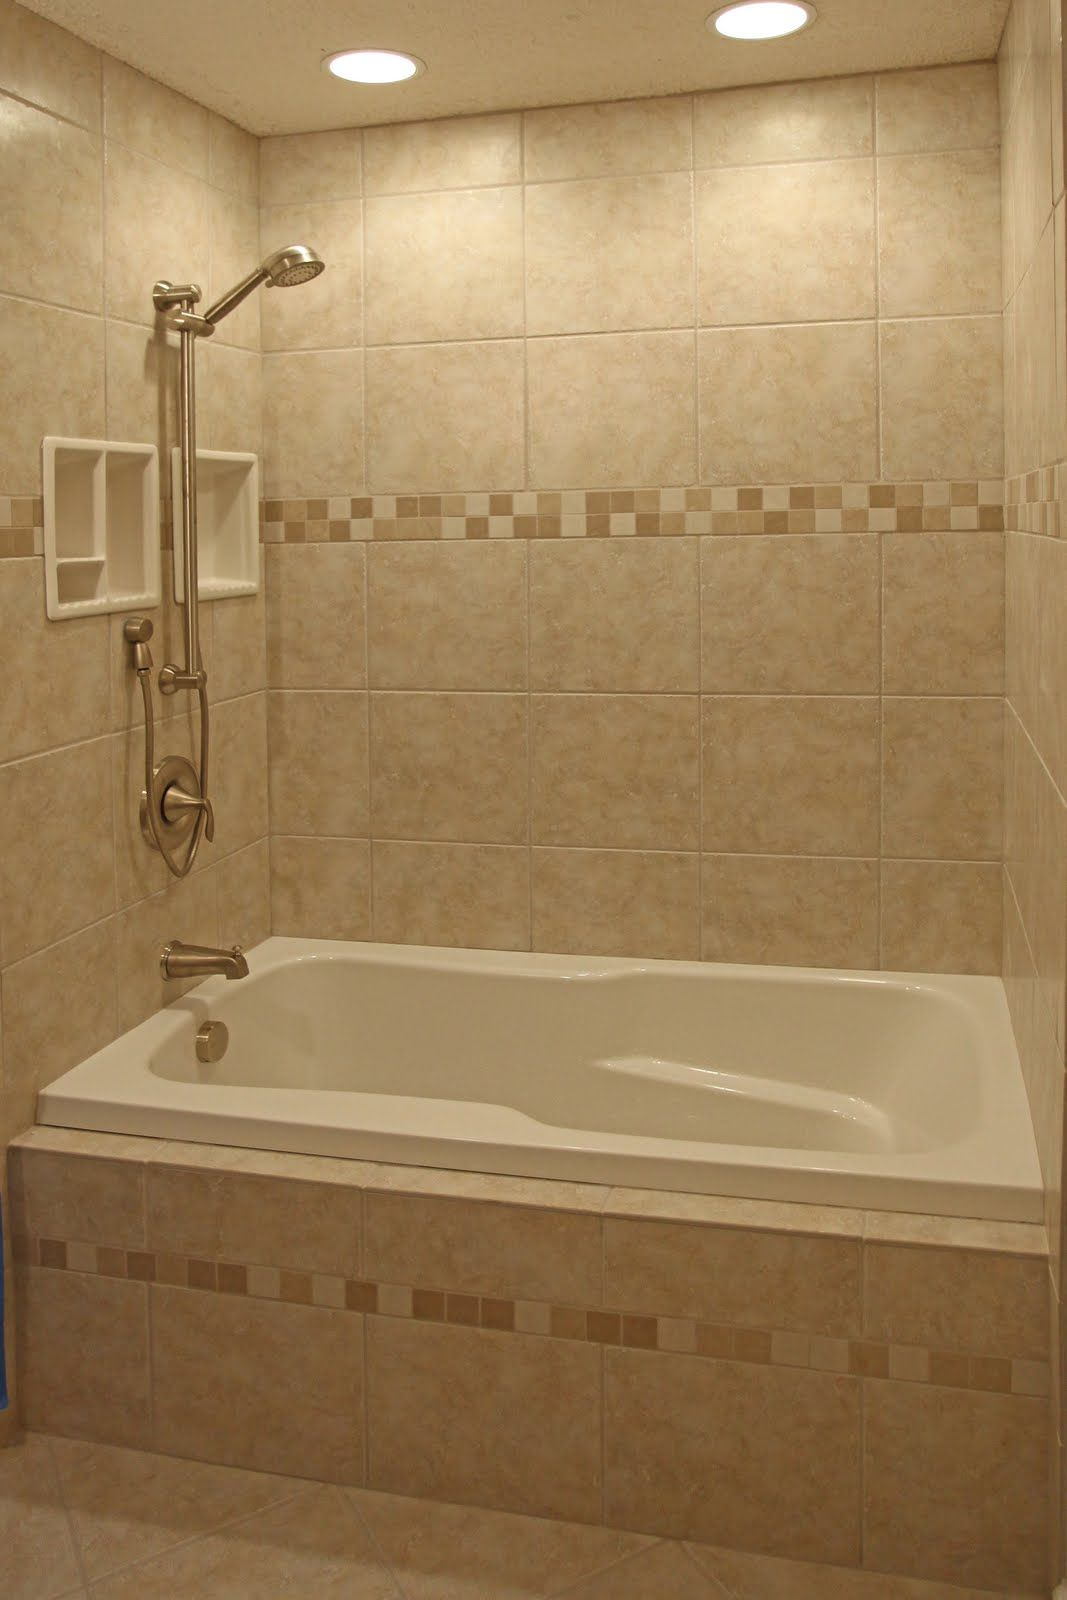 30 Small Bathroom Decorating Ideas With Images Bathtub Tile Bathroom Tile Designs Bathroom Tub Shower Combo